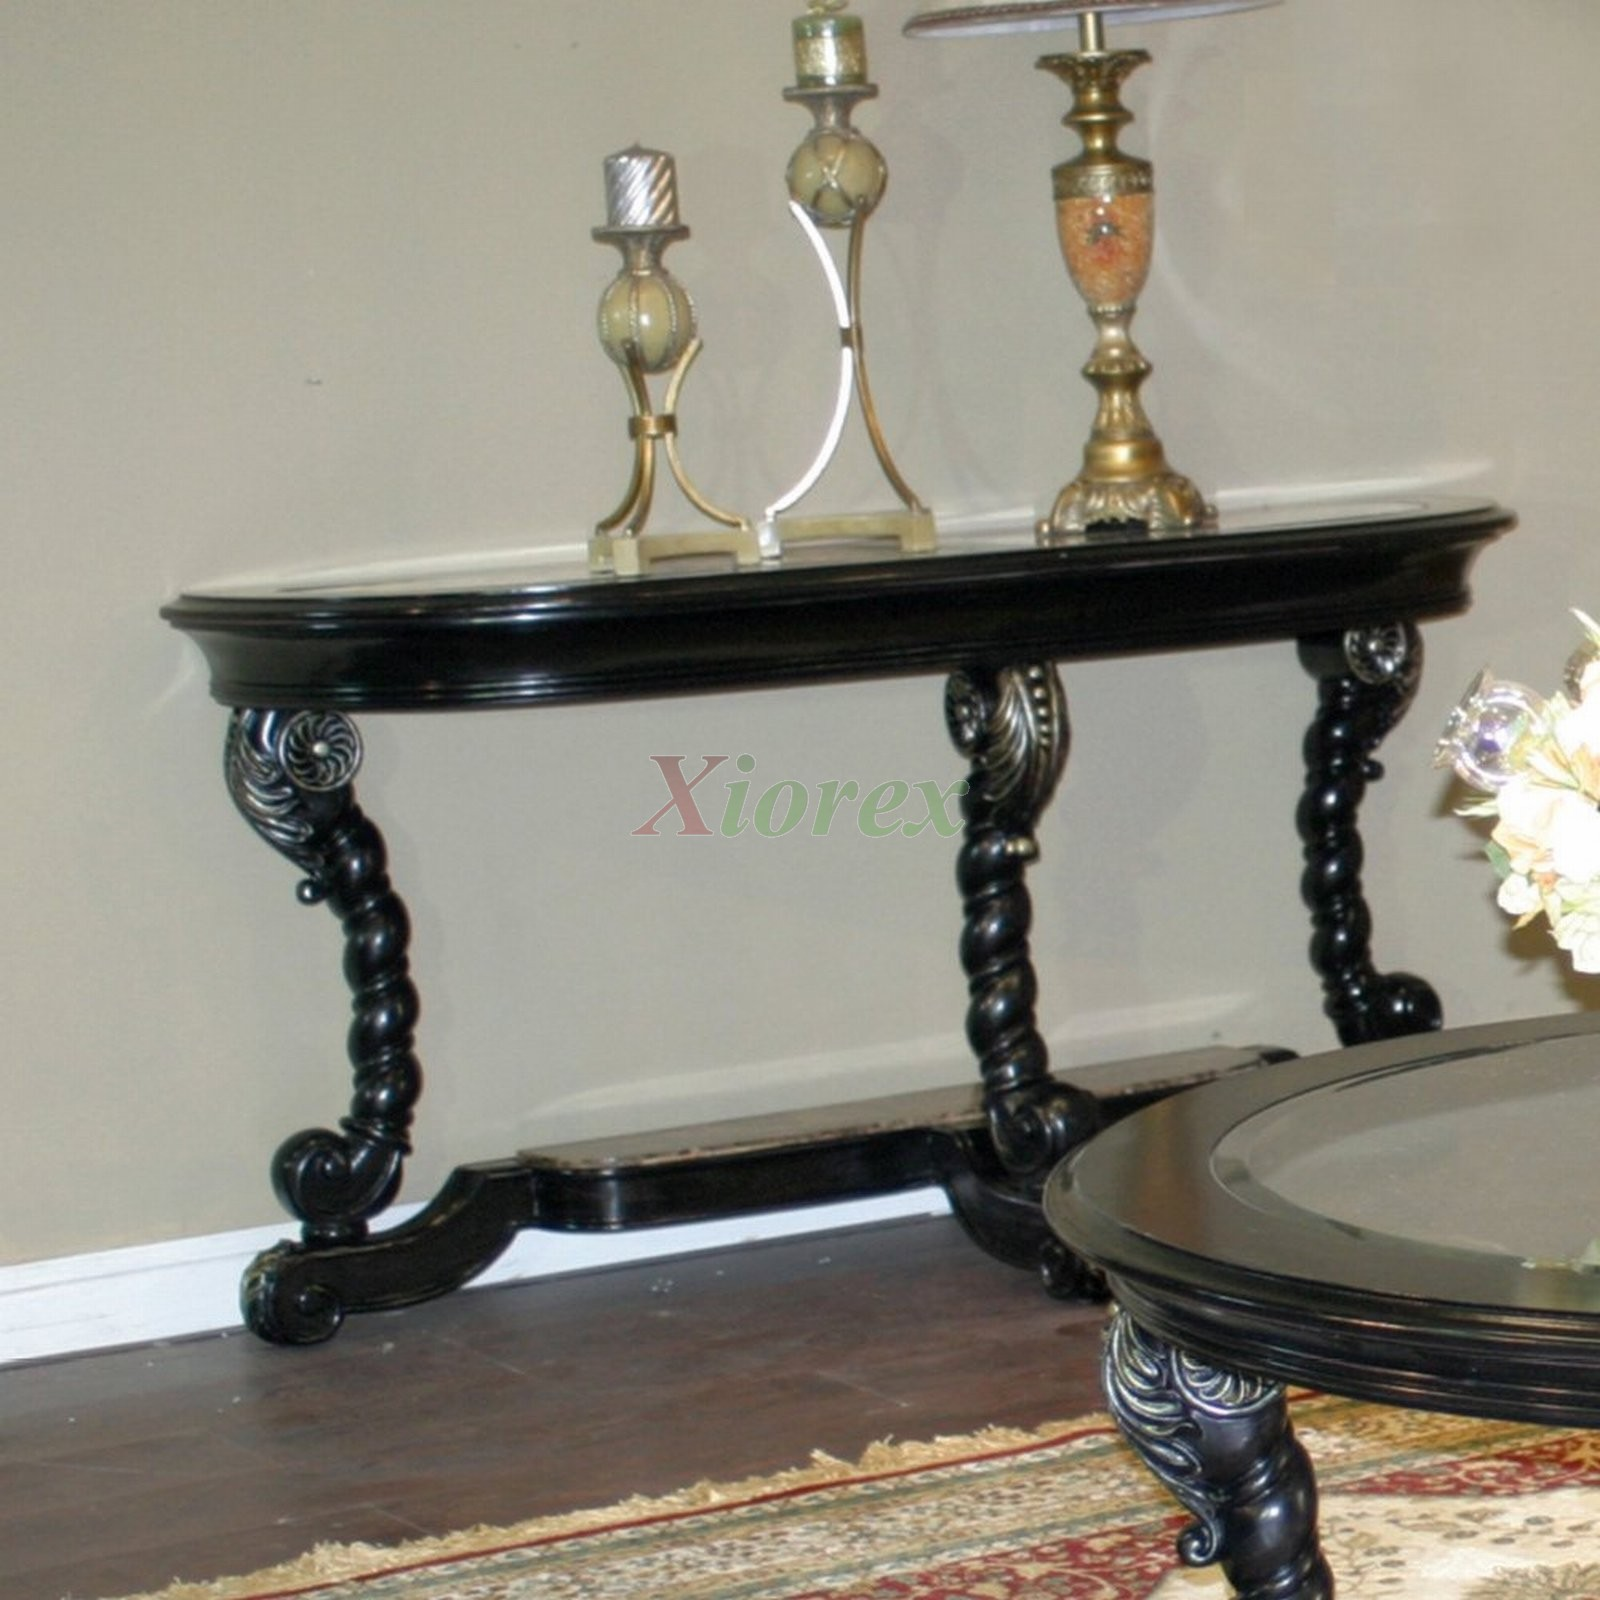 Living Room Sets Toronto alya classic sofa tables toronto living room furniture | xiorex